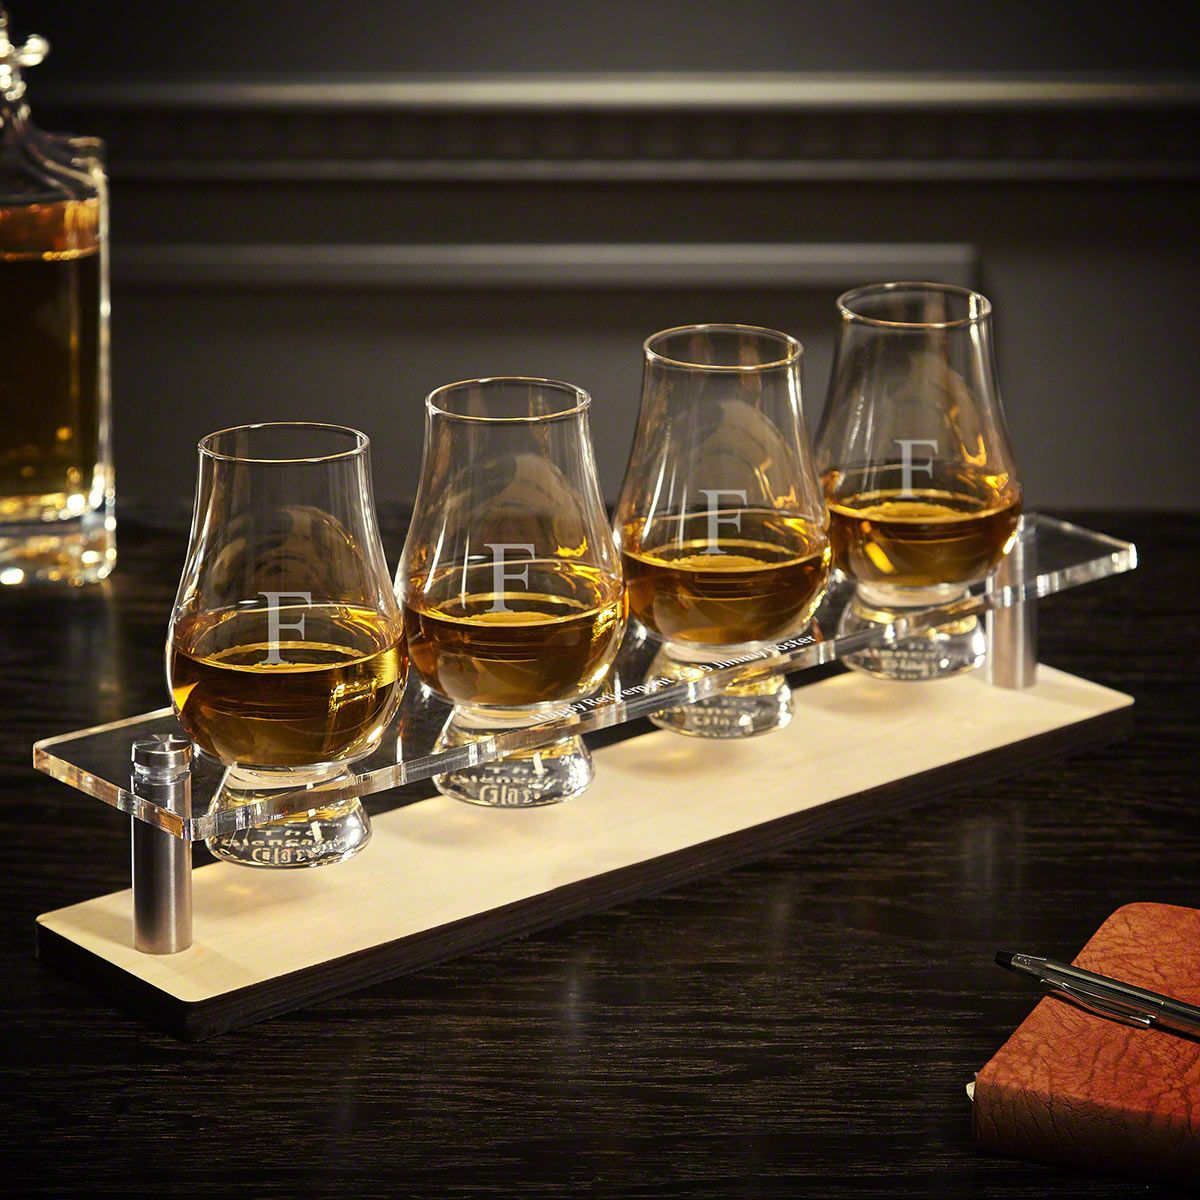 Personalized Serving Tray with Engraved Glencairn Glasses 5 pc